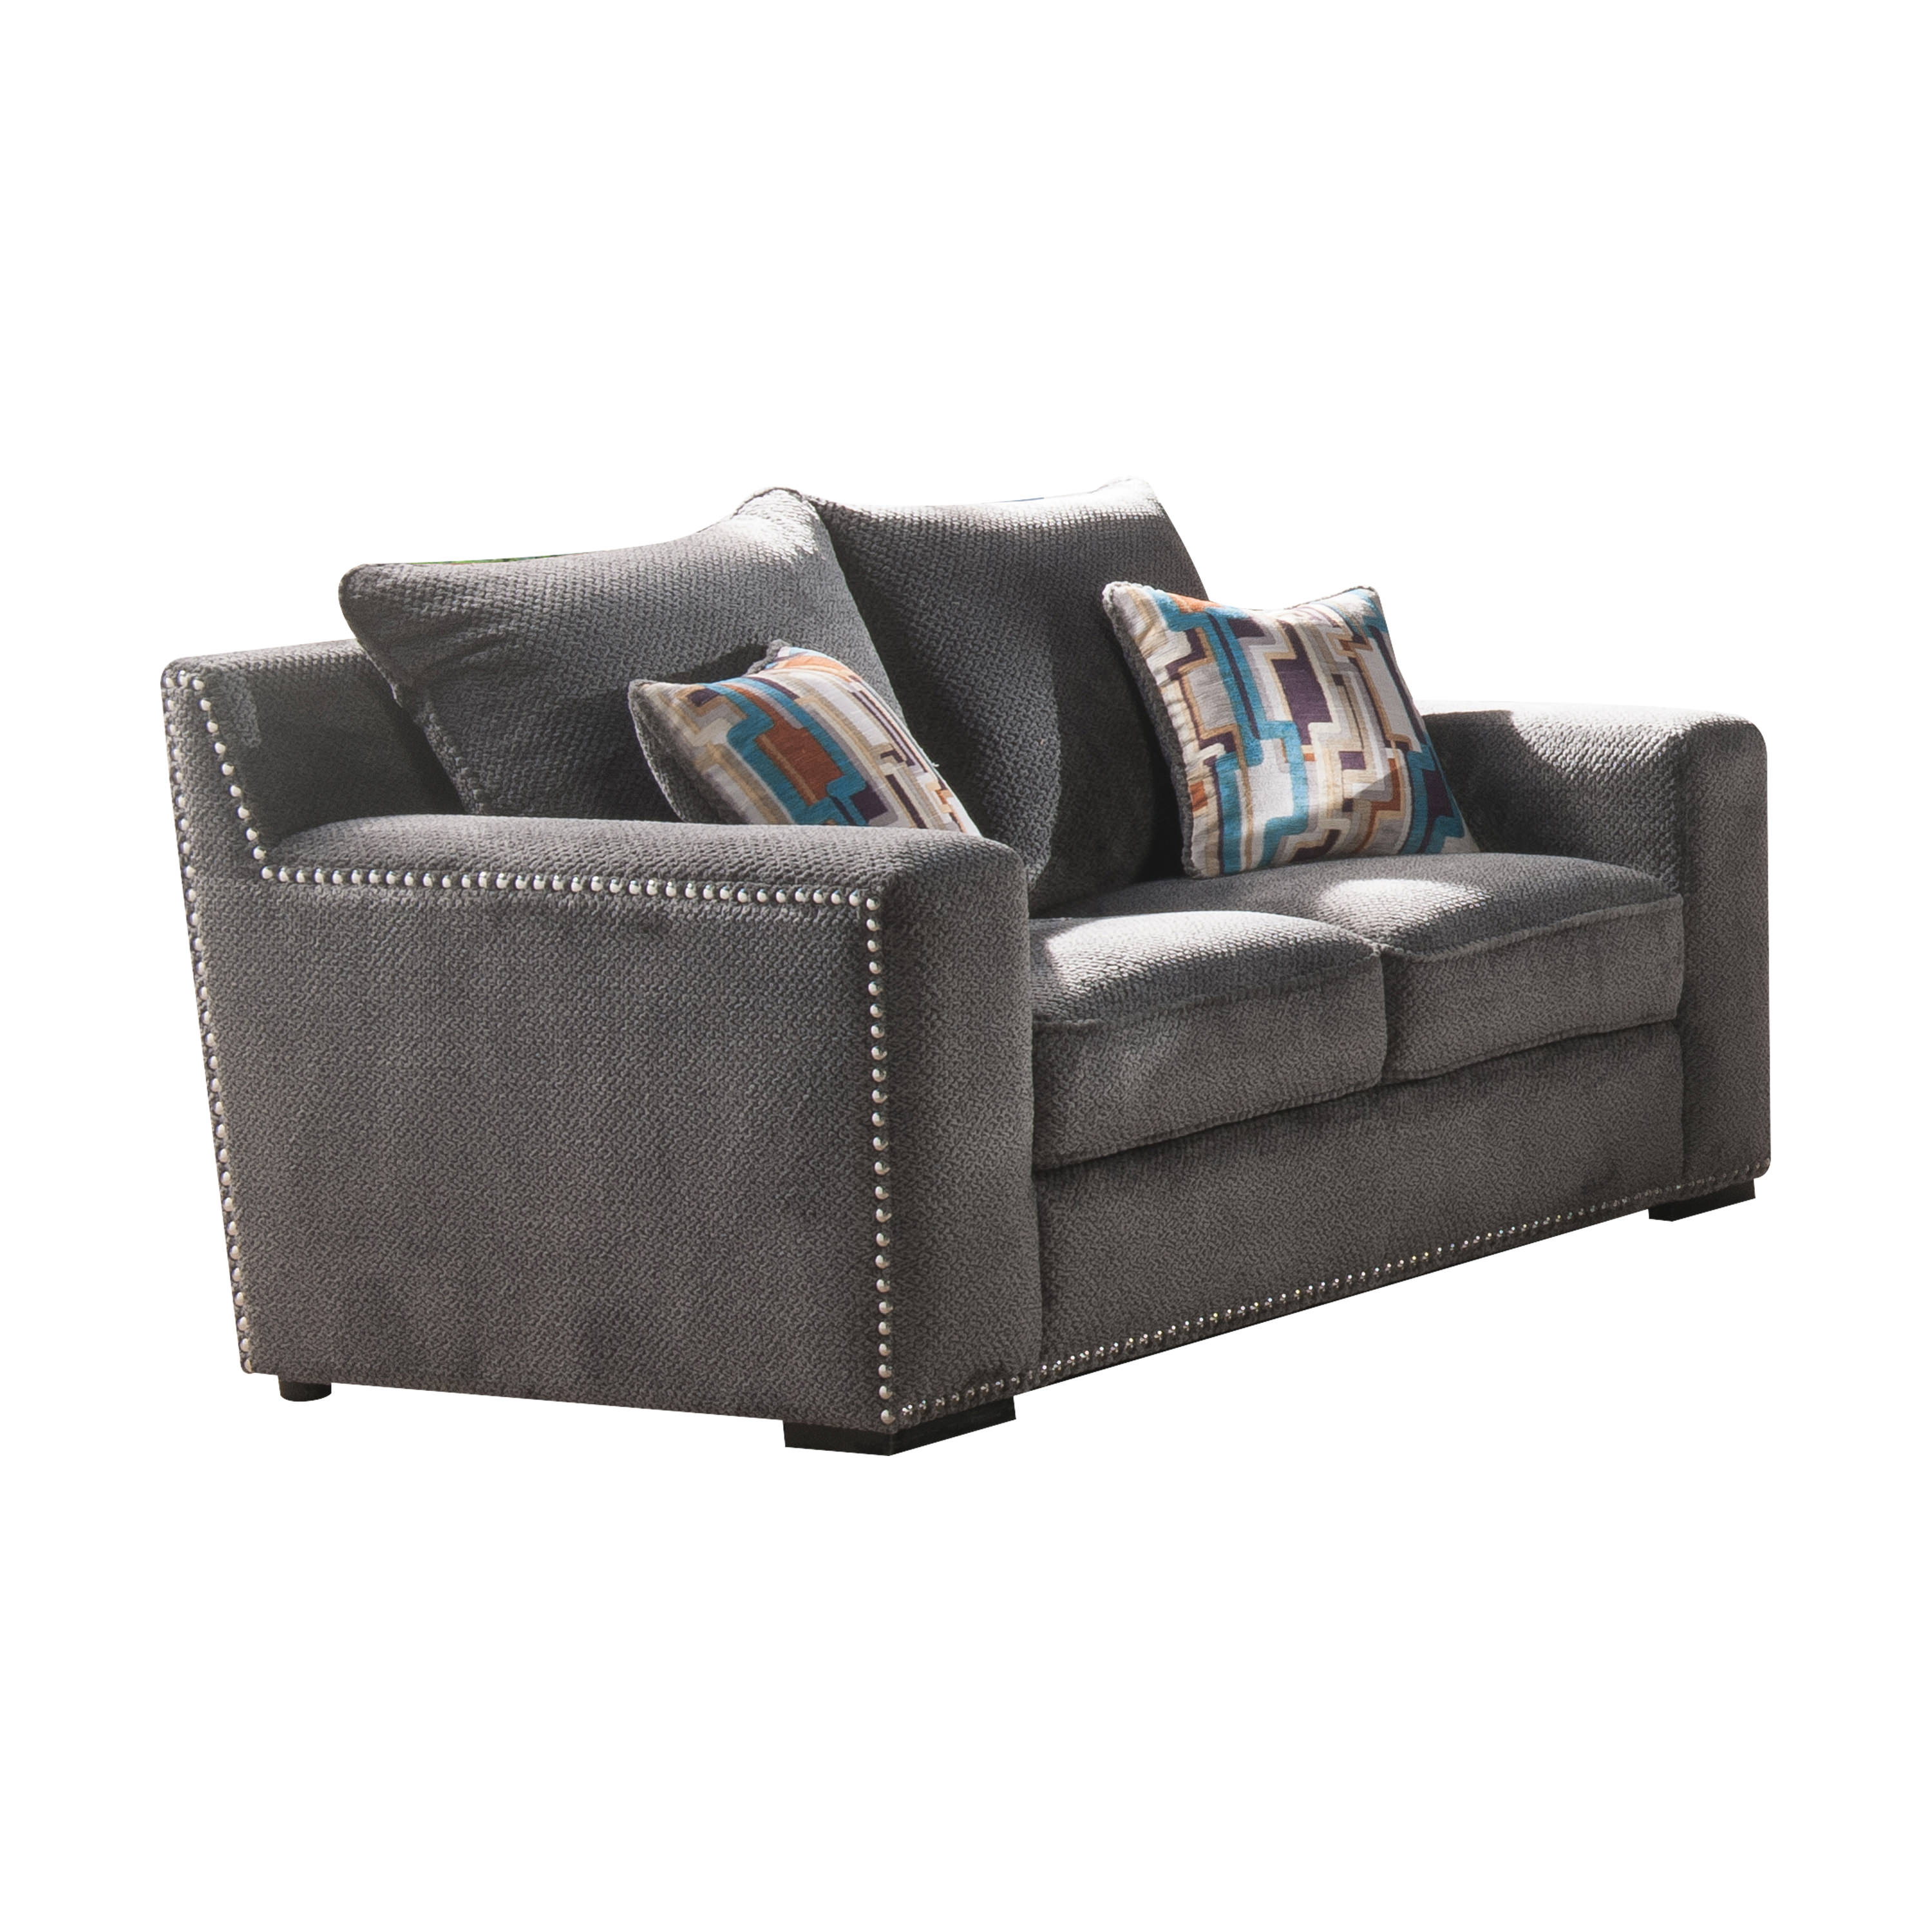 Acme Ushury Down Feather Loveseat with 2 Pillows in Gray Fabric